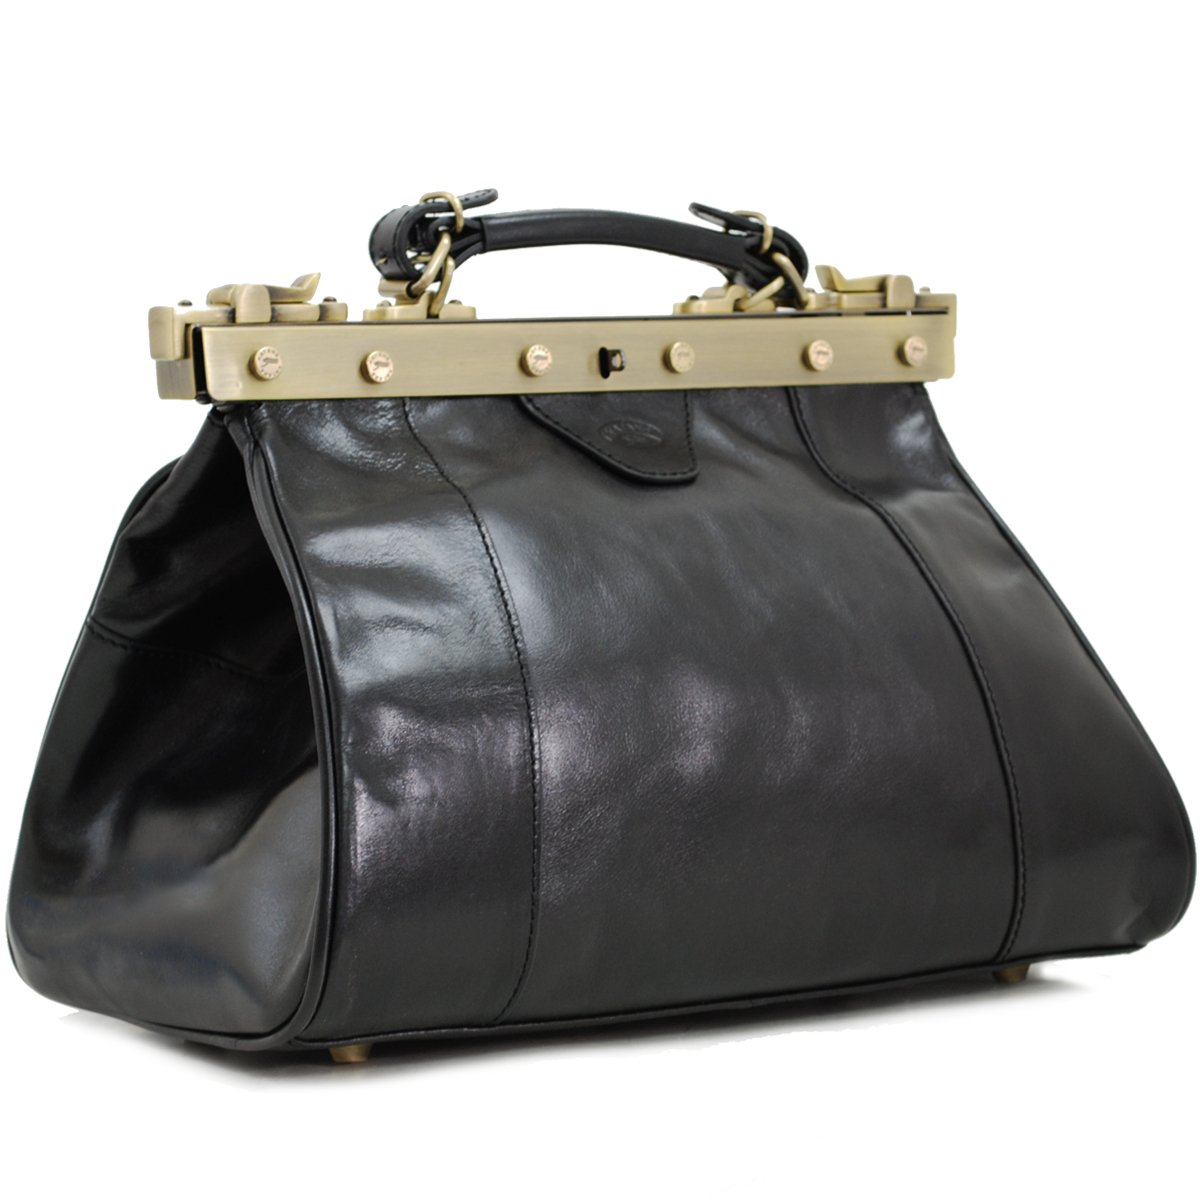 Sac à main Doctor Bag en Cuir KATANA - Noir